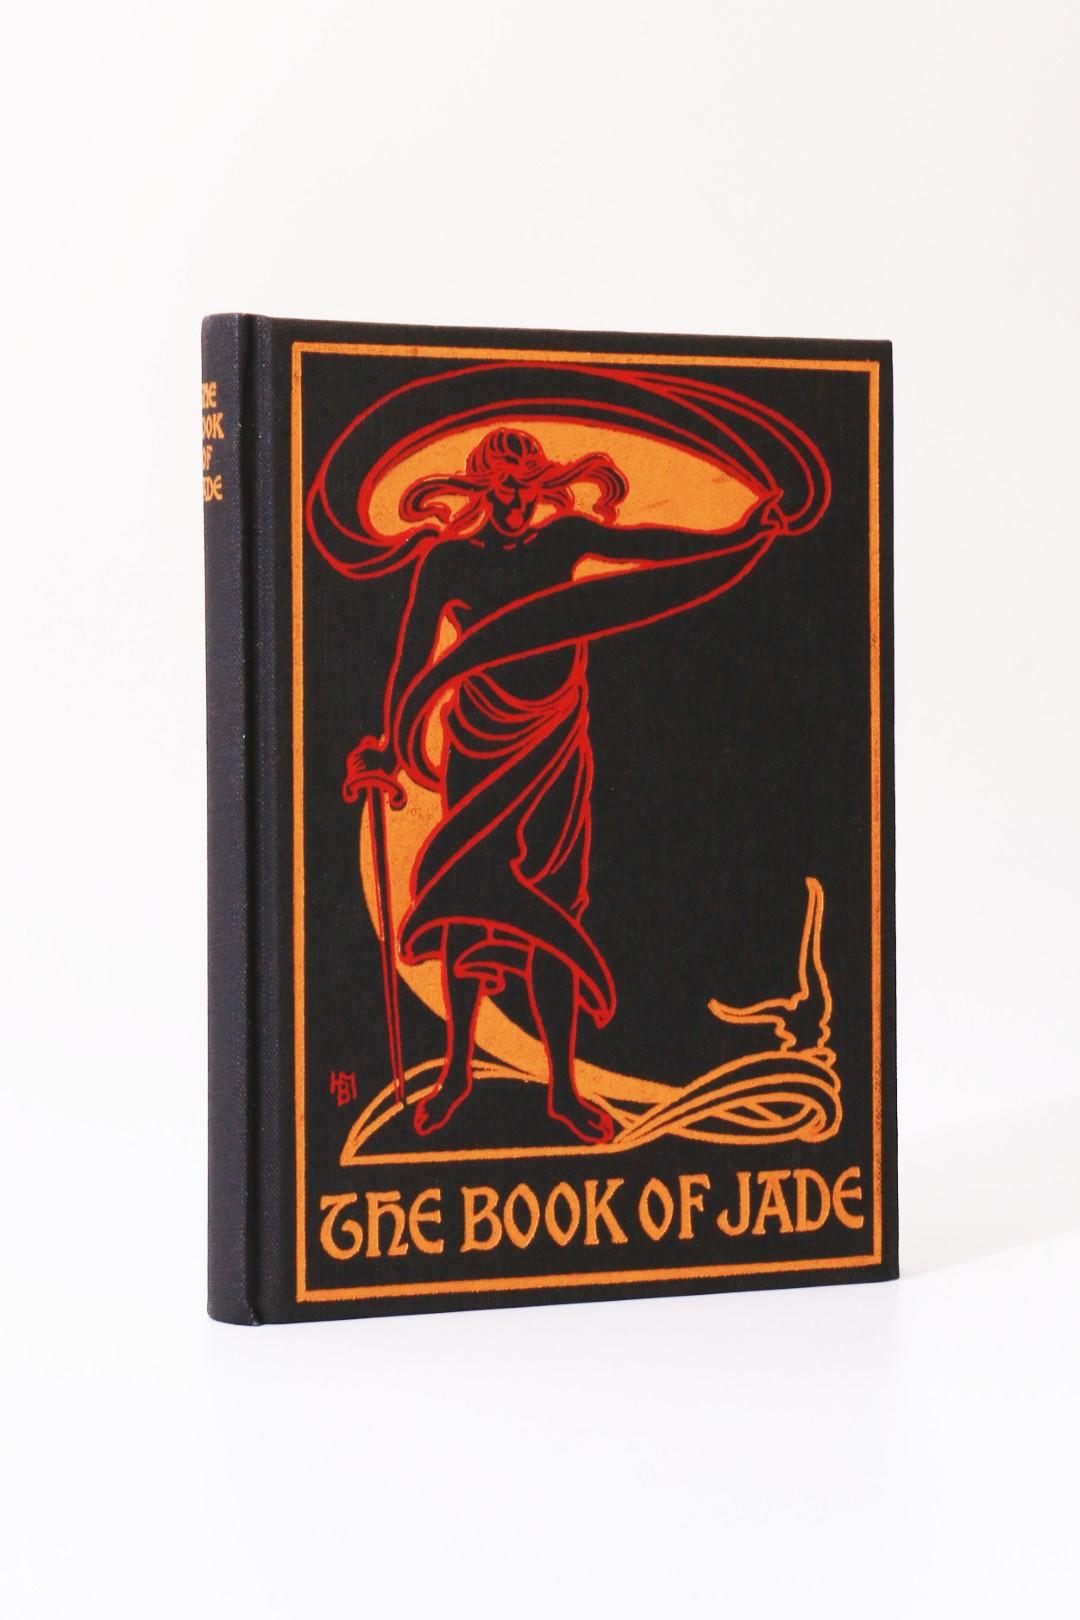 David Park Barnitz - The Book of Jade - Durtro Press, 1998, Limited Edition.